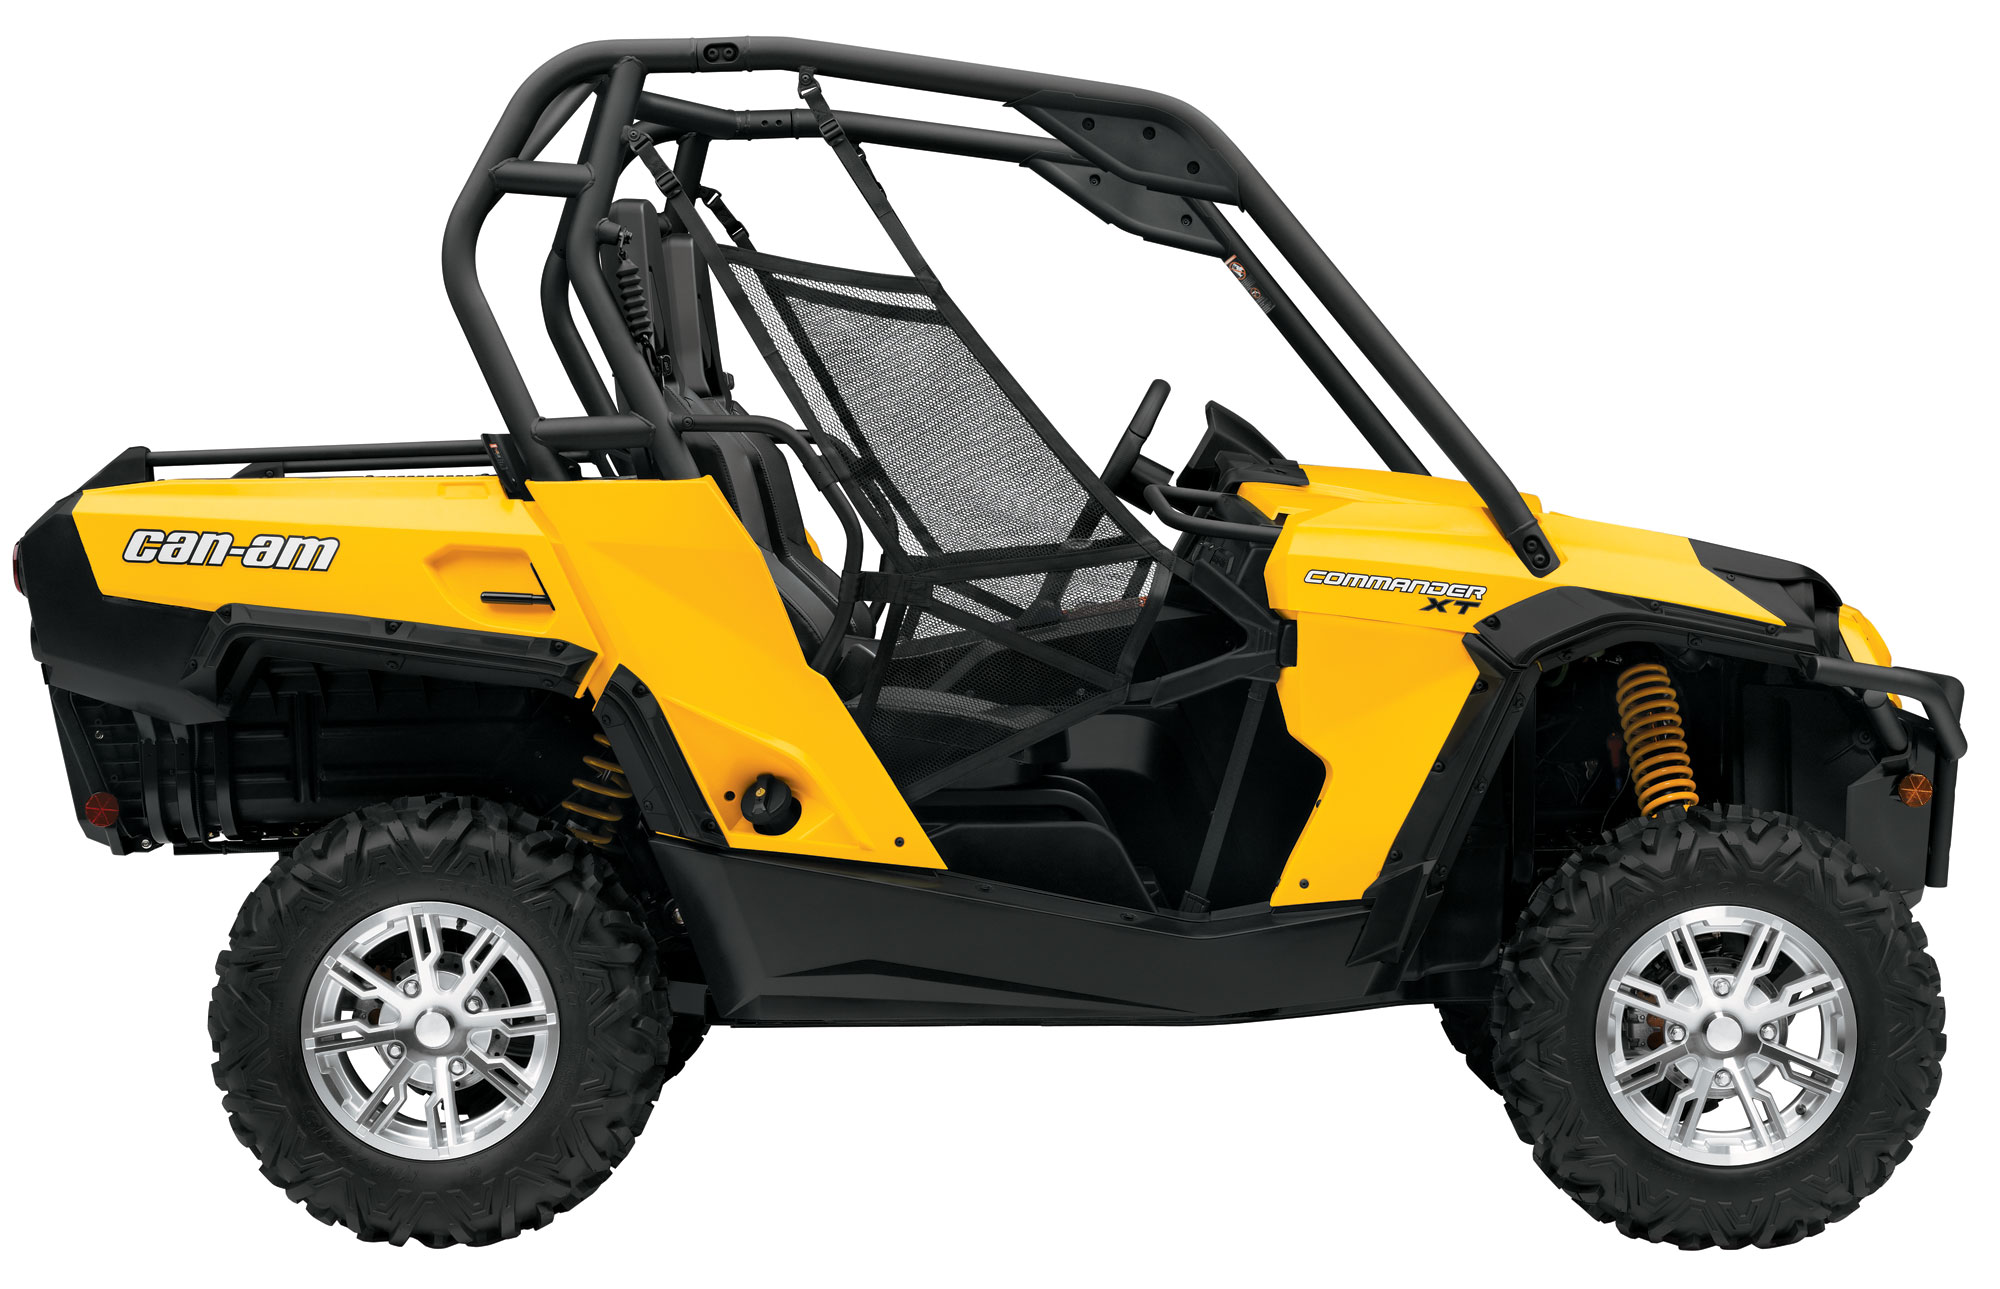 2013 Can-Am Commander 1000 XT Review